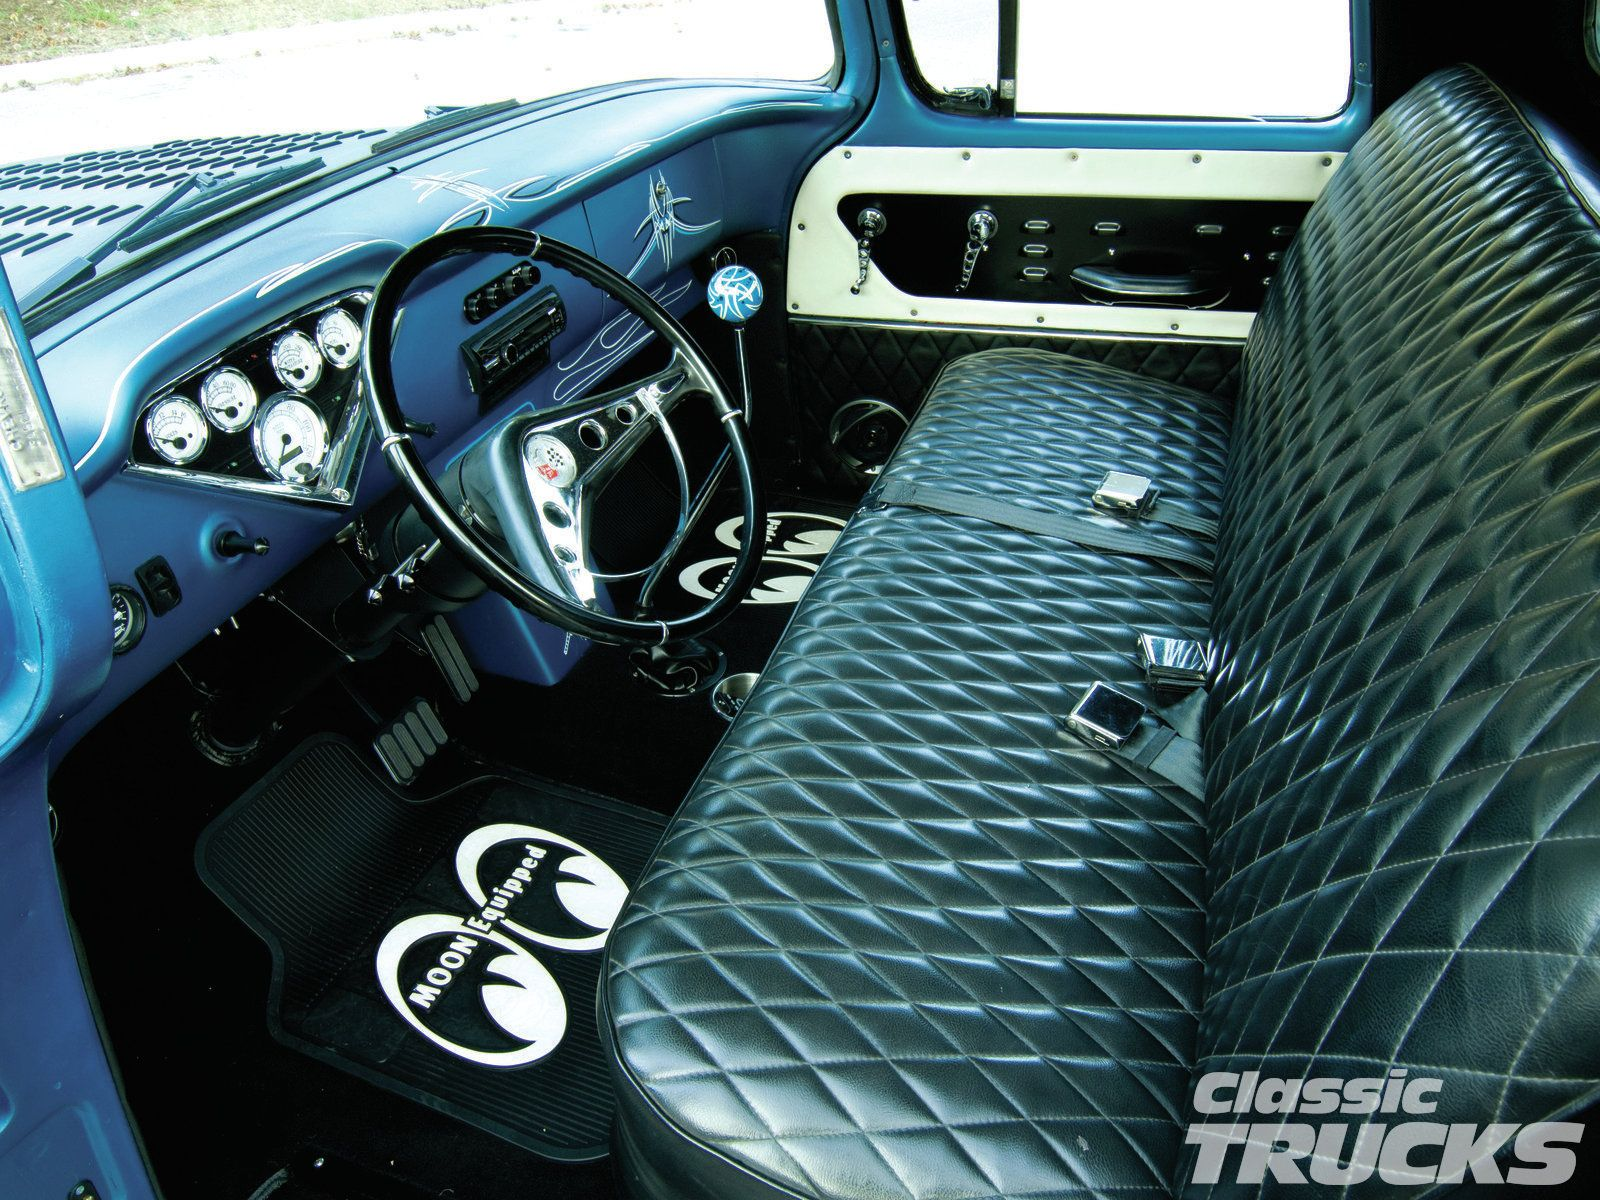 1956 Chevrolet Panel Truck Interior Dashboard Pictures To Pin On 1956 Chevy Truck Interior Parts Freshittips Truck Interior 1956 Chevy Truck Chevy Trucks